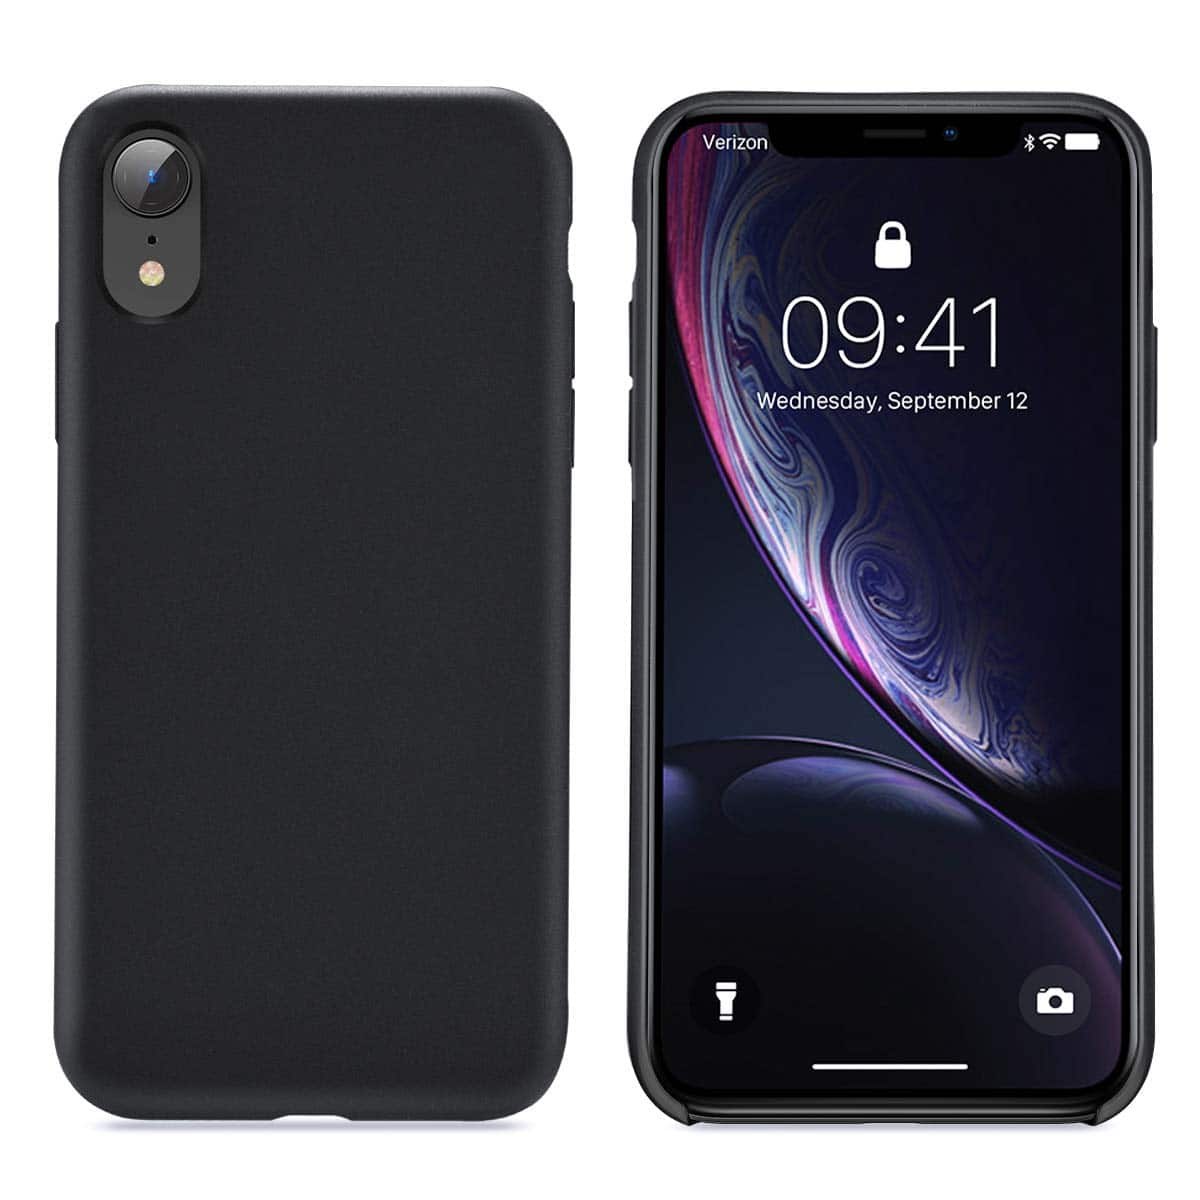 Ainope iPhone Xs Max /XR/iPhone 11/iPhone 11 Pro Max Cases & Screen Protector from $2.66 + FS